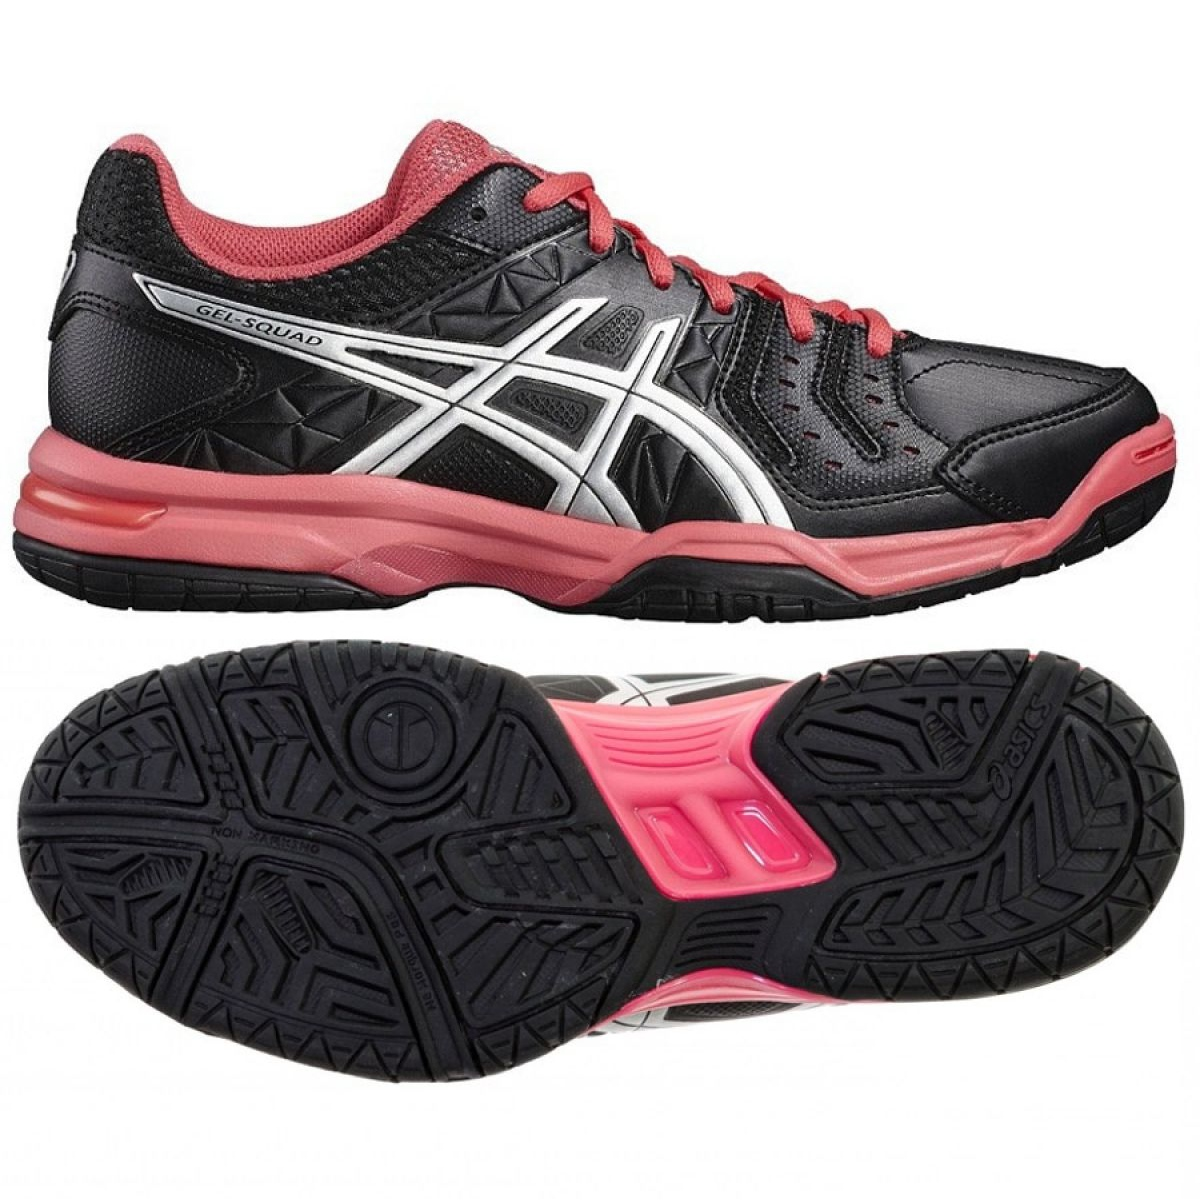 Kleidung & Accessoires Asics Gel Squad Turnschuhe